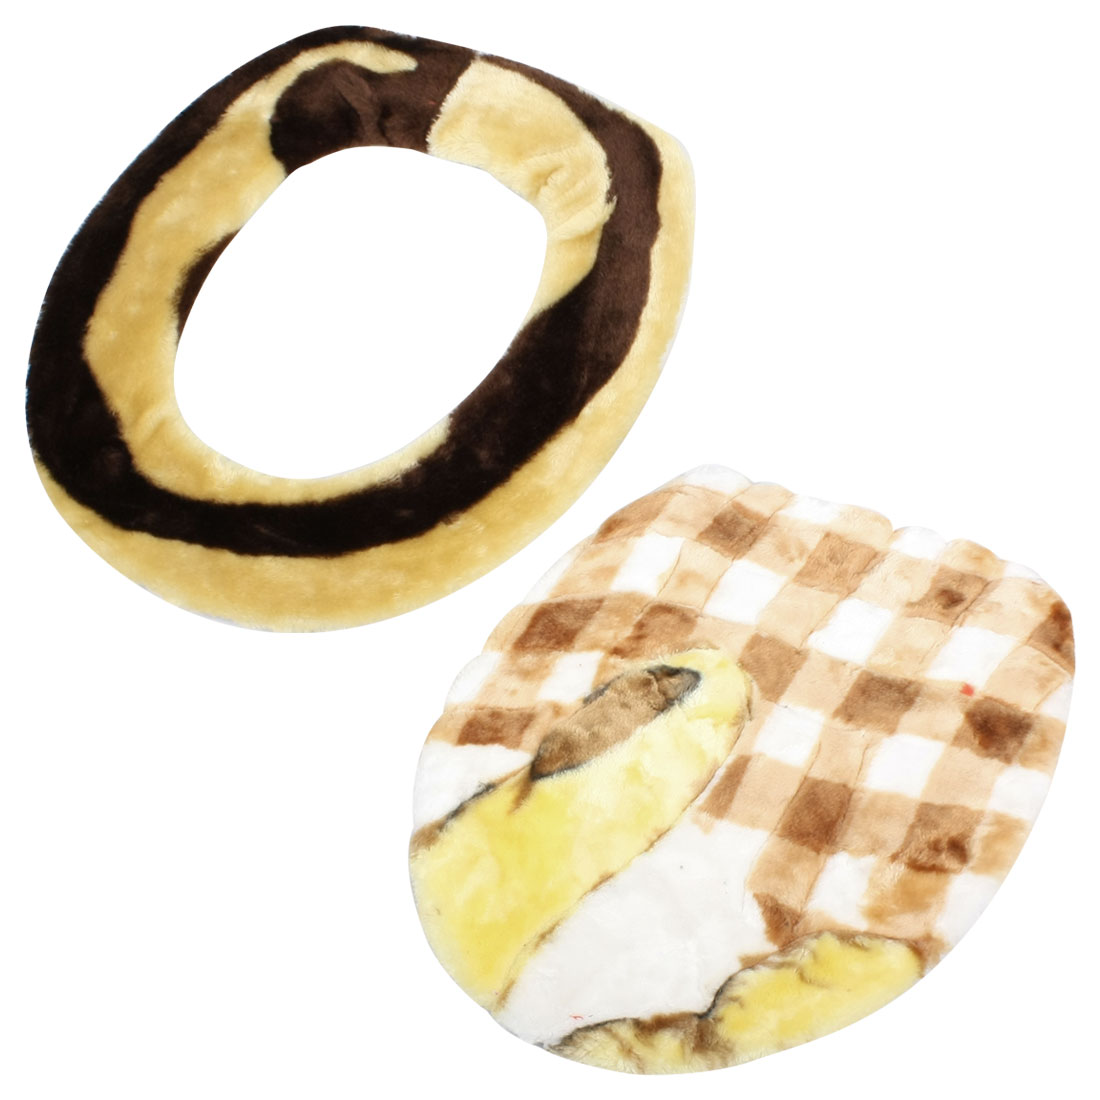 Brown White Check Print Closestool Lid Mat + Oval Shape Toilet Seat Cover Set